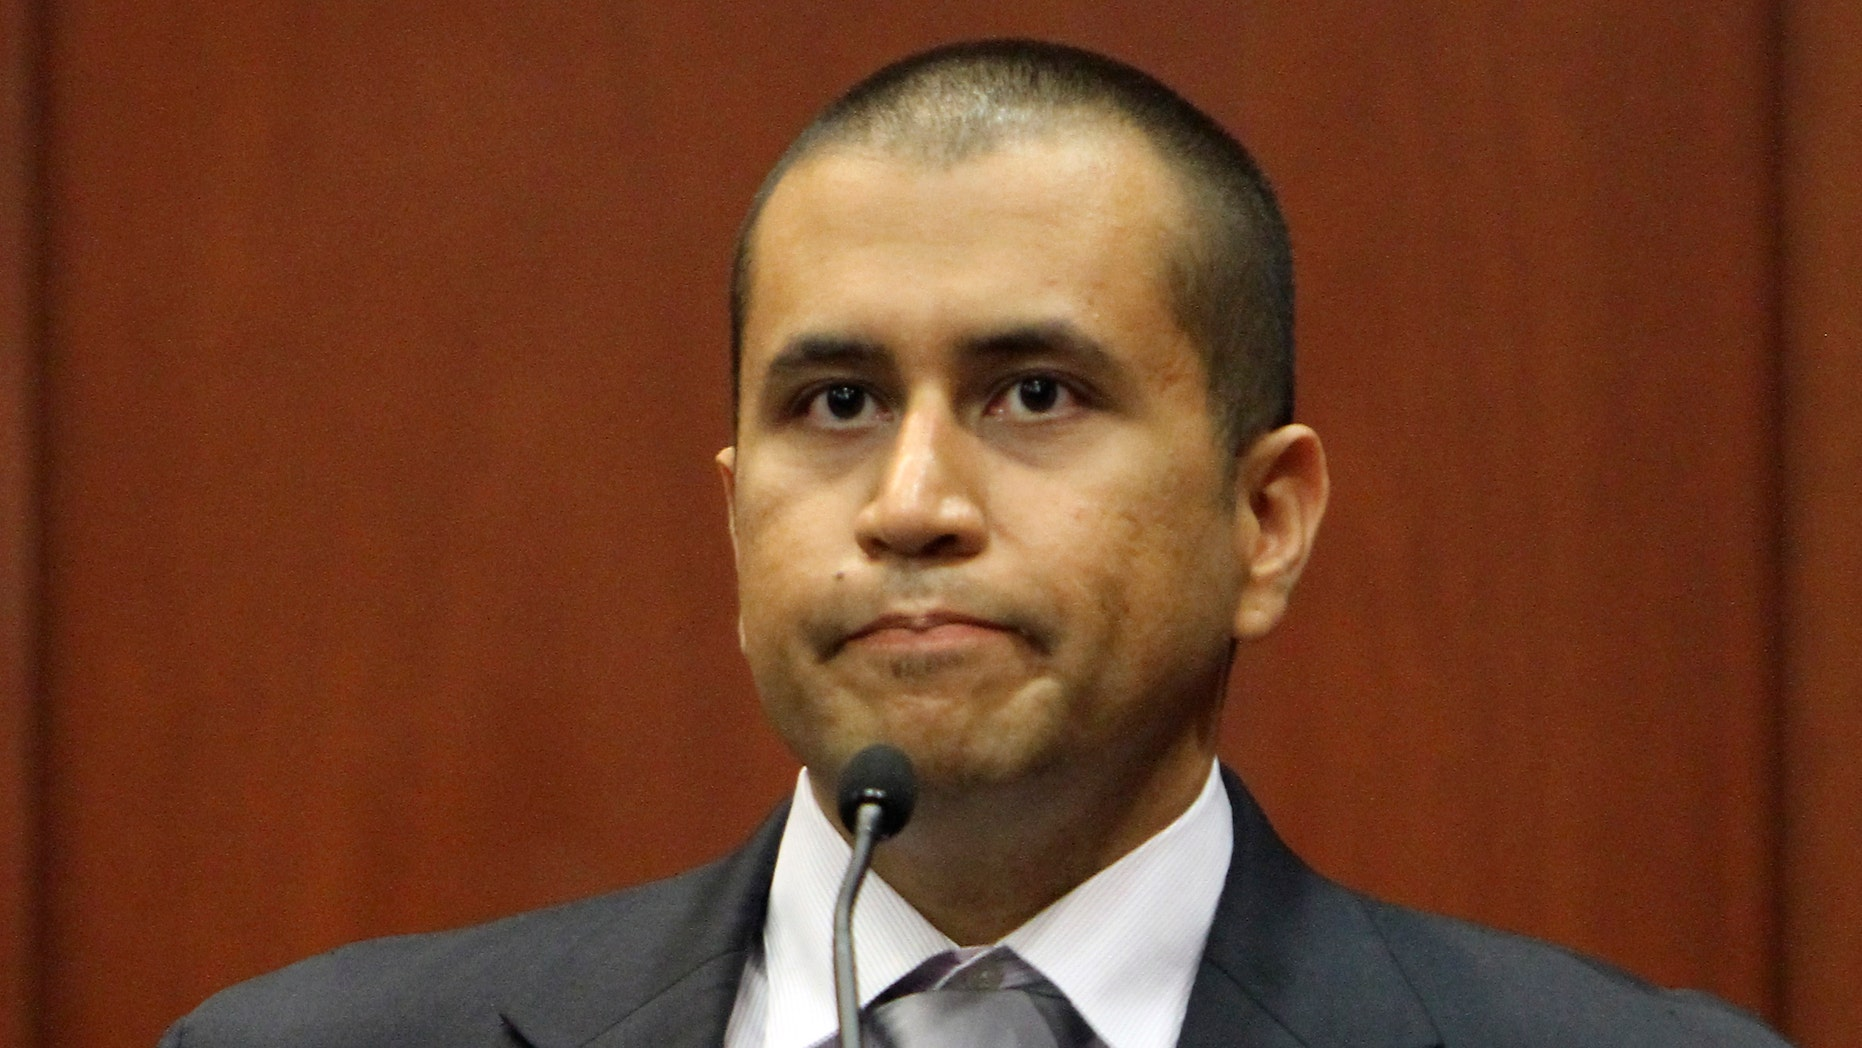 George Zimmerman appears before Circuit Judge Kenneth R. Lester Jr. Friday, April 20, 2012, during a bond hearing in Sanford, Fla. Lester says Zimmerman can be released on $150,000 bail as he awaits trial for the shooting death of Trayvon Martin. Zimmerman is charged with second-degree murder in the shooting of Martin. He claims self-defense.  (AP Photo/Orlando Sentinel, Gary W. Green, Pool)